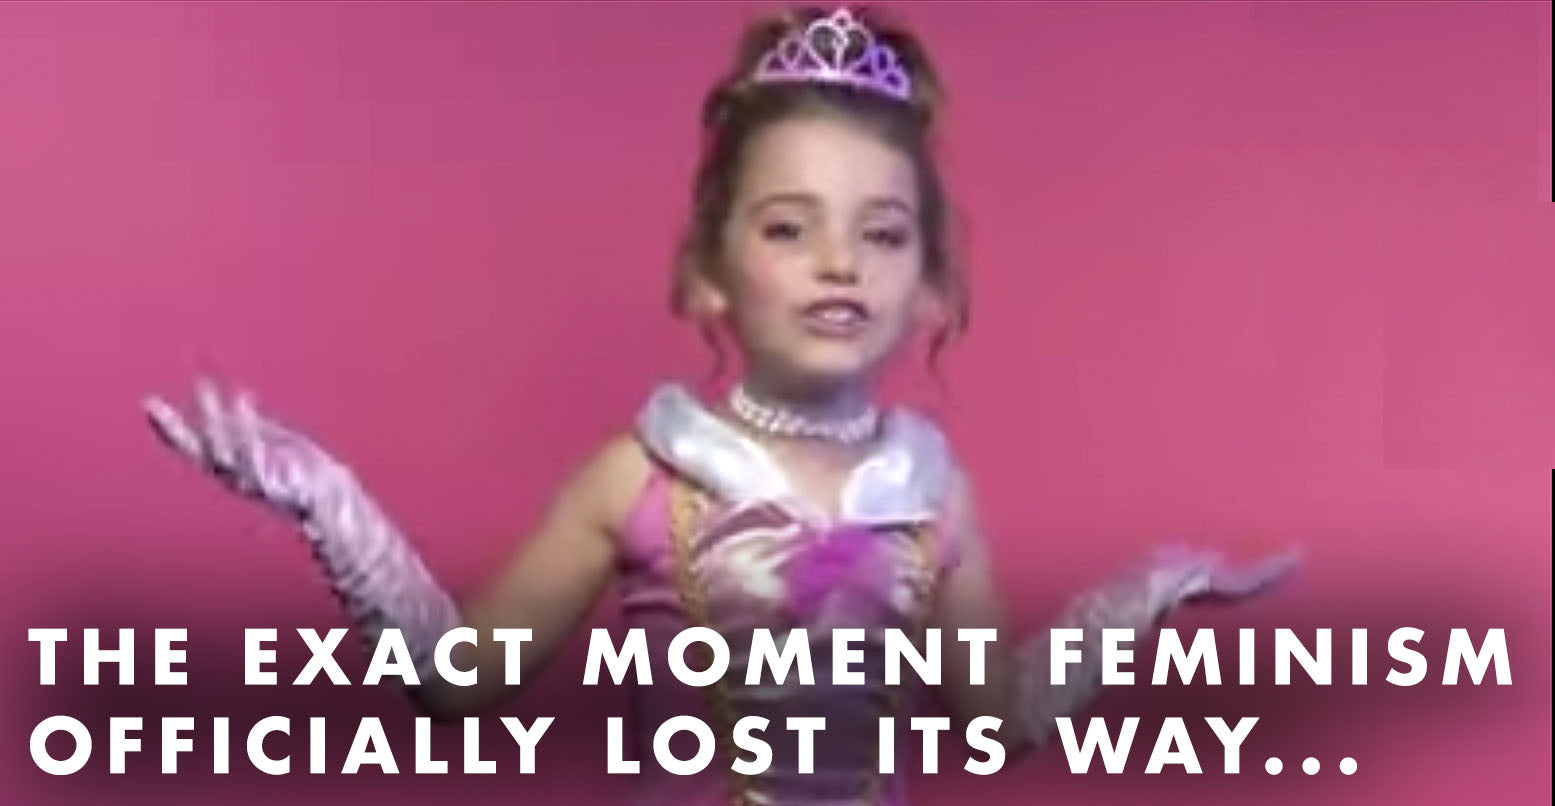 VIDEO: The exact moment feminism officially lost its way